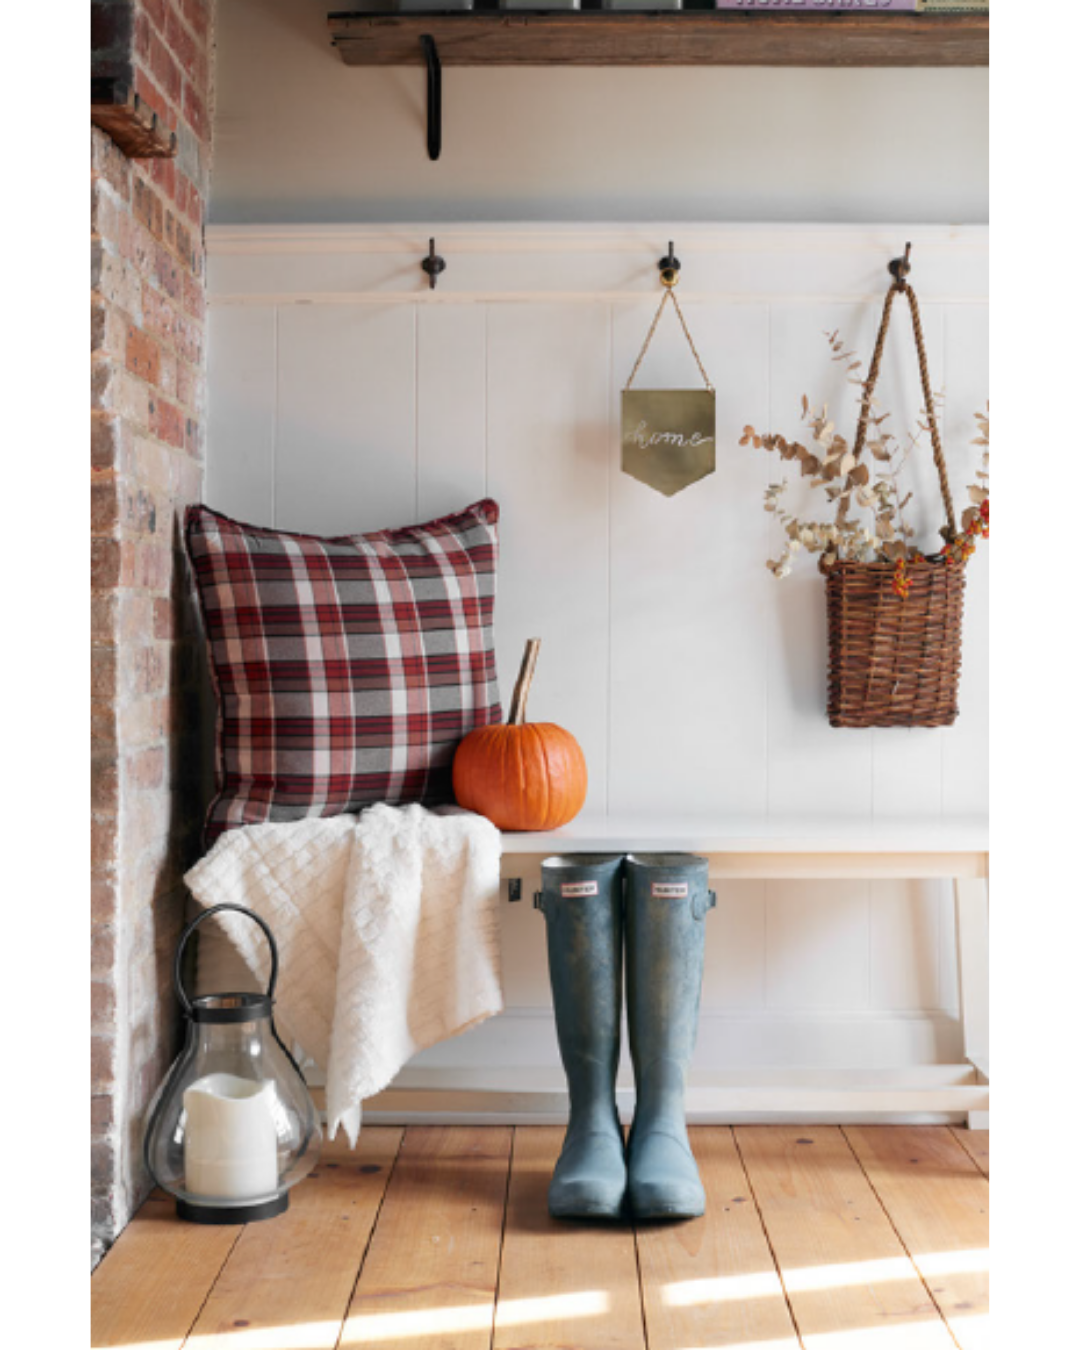 Tip: Incorporate seasonal clothing like scarves and footwear into your home decor.